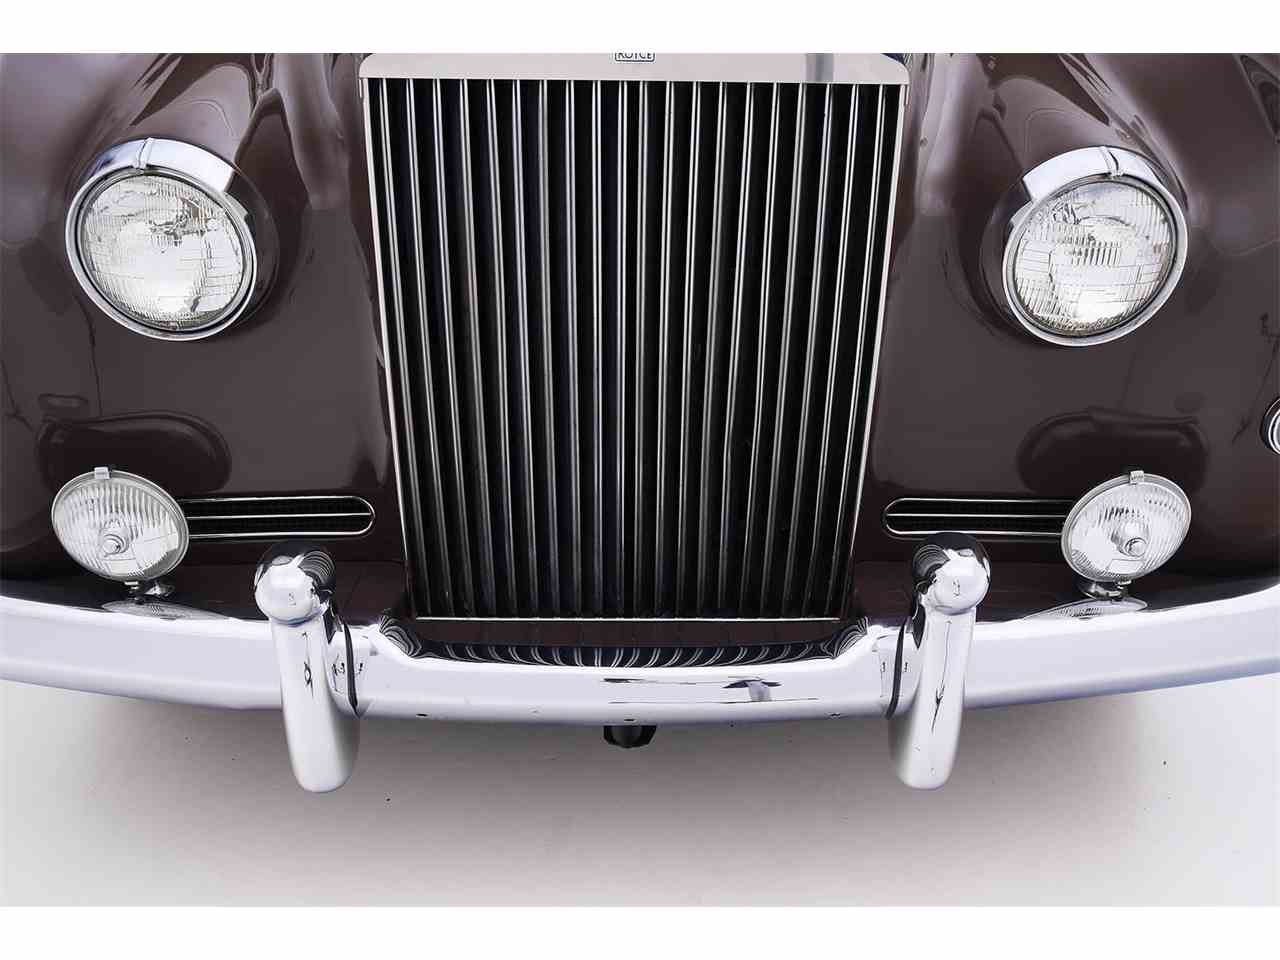 Large Picture of 1962 Rolls-Royce Silver Cloud II located in Missouri - $69,500.00 Offered by Hyman Ltd. Classic Cars - LEAS